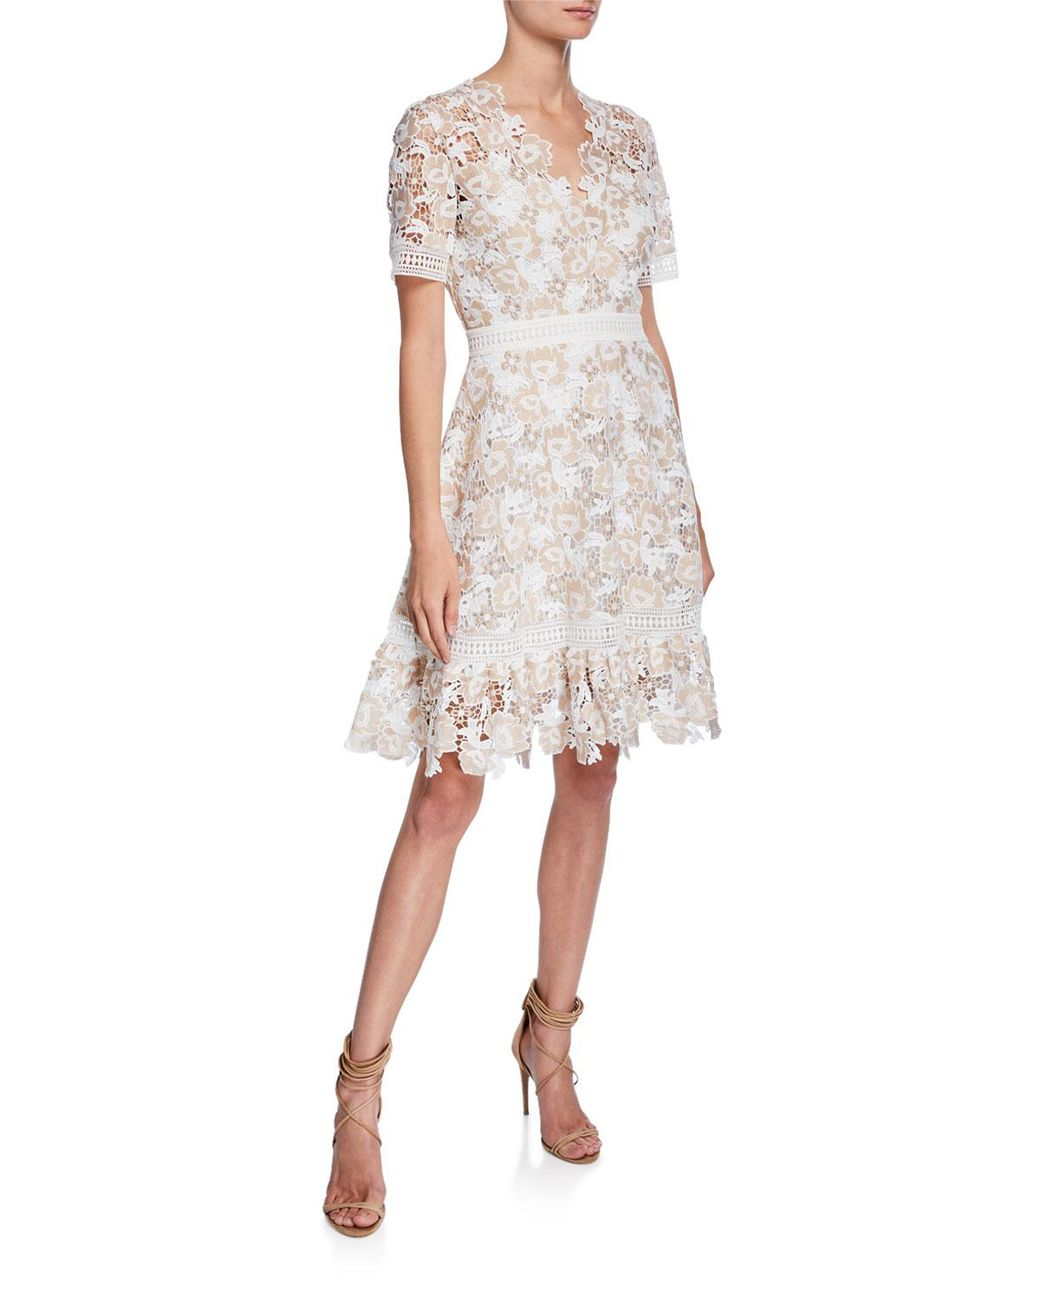 a825b02f785 Shoshanna Toscana V-neck Short-sleeve Floral-lace Dress in Natural - Save  25% - Lyst